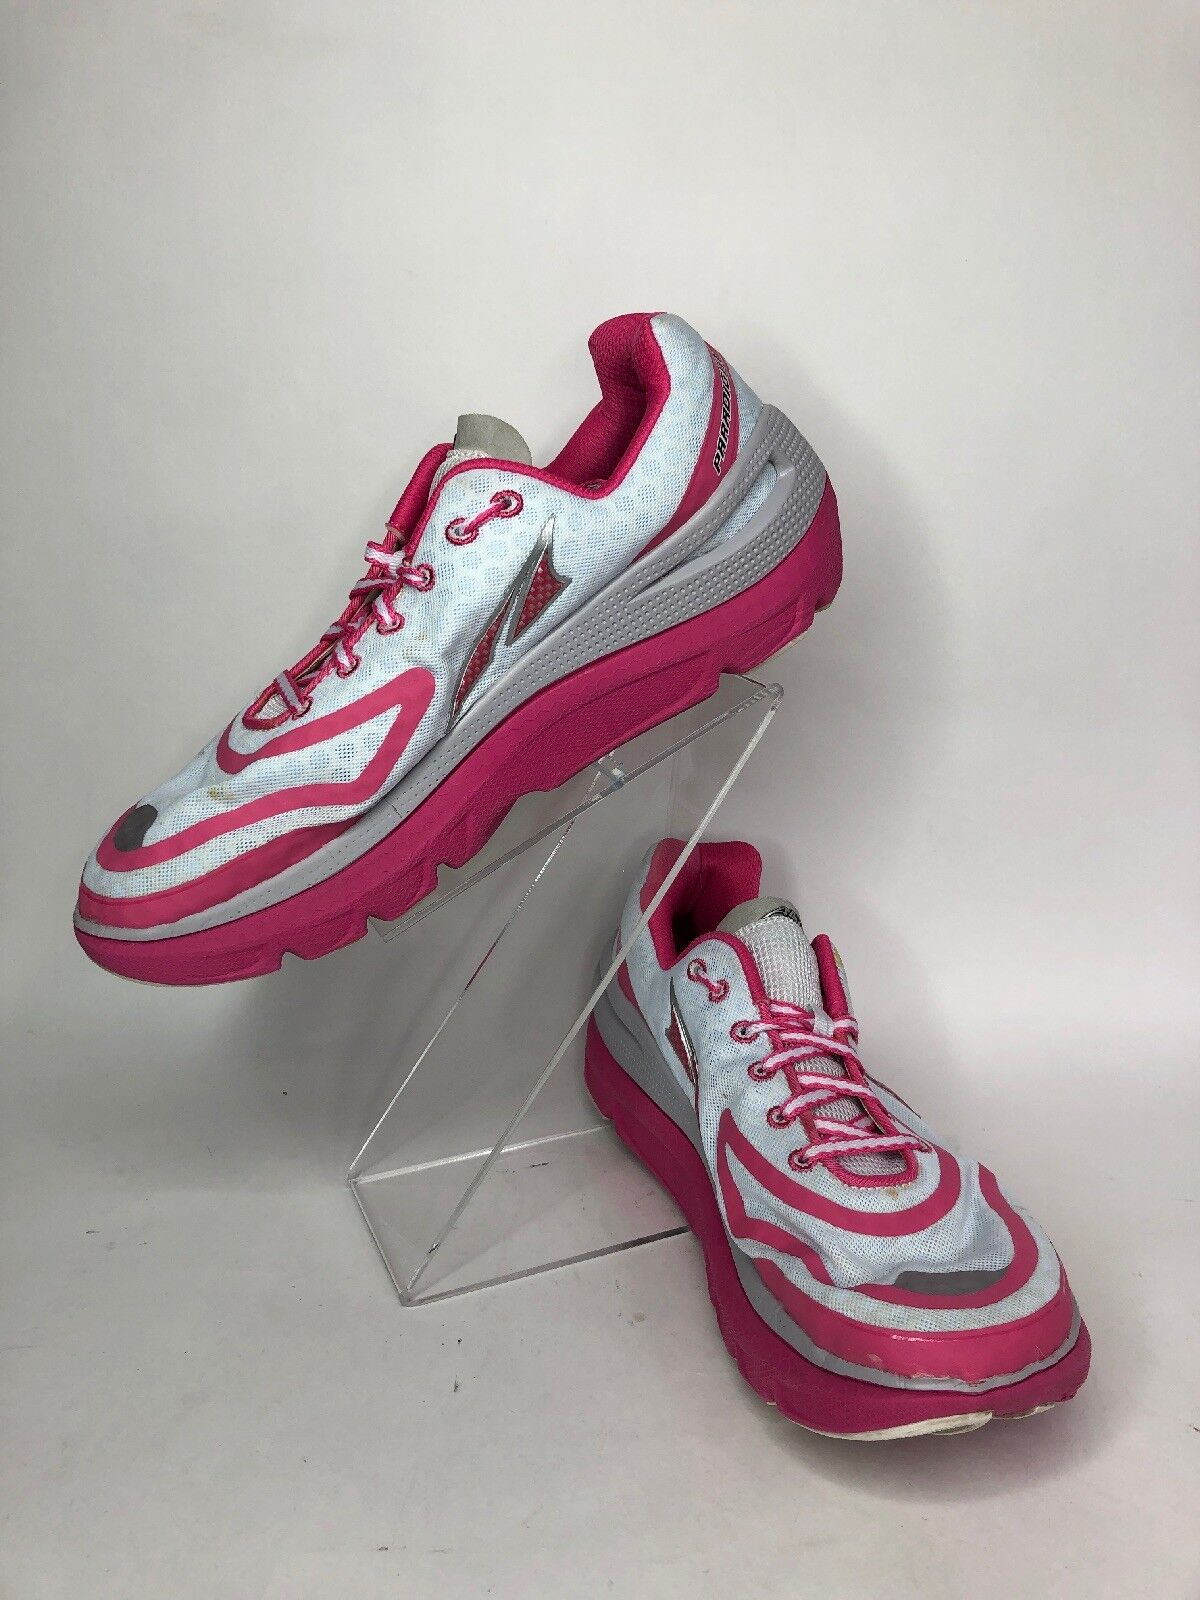 best website fd19a 63917 Altra Paradigm NRS Womens Trail Running shoes Size 9.5 Pink White A2435-1 B7